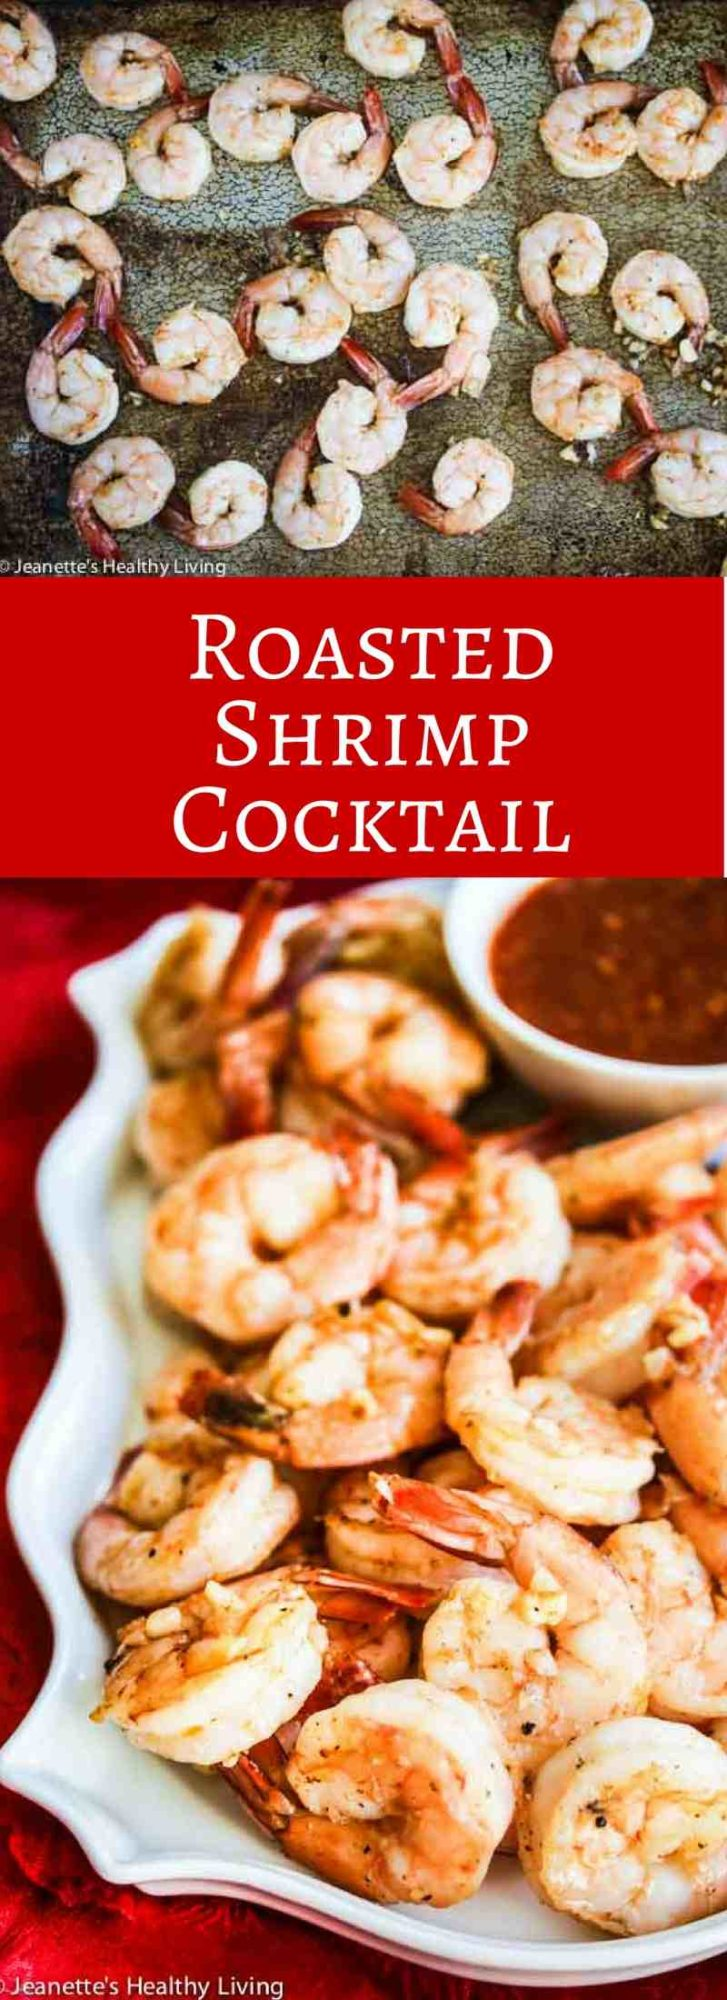 Roasted Shrimp Cocktail -Much more flavorful than regular shrimp cocktail and easy to make in large batches